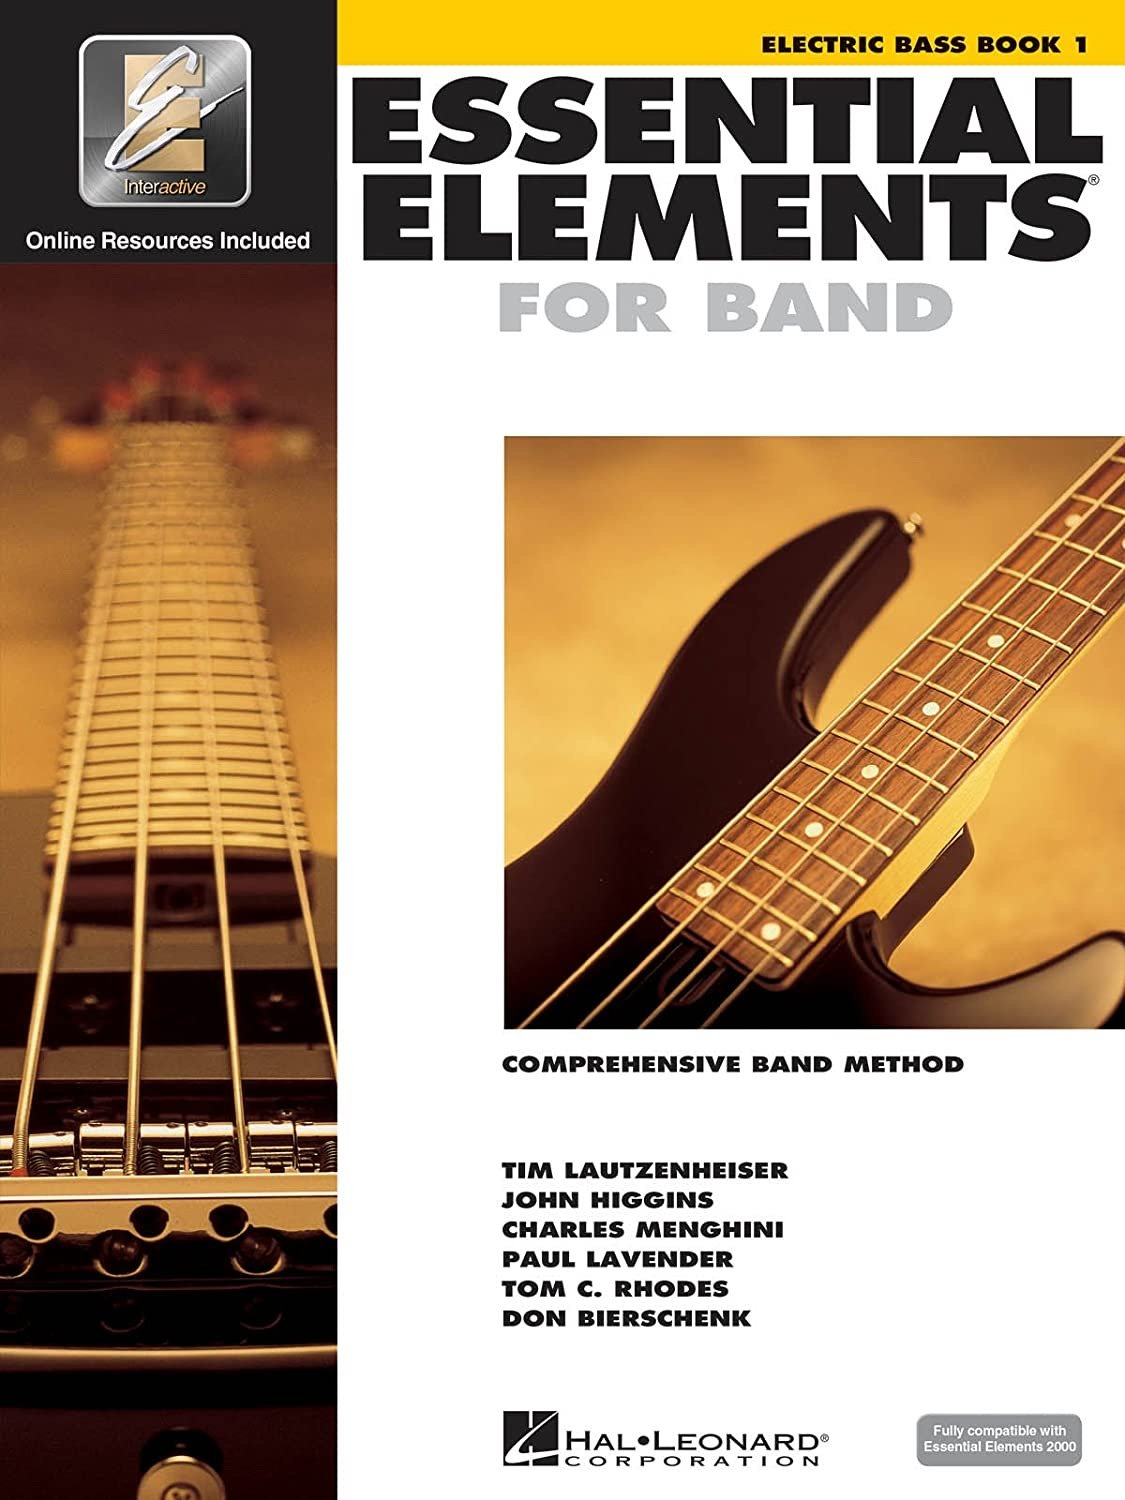 Essential Elements for Band: Book 1 - Electric Bass